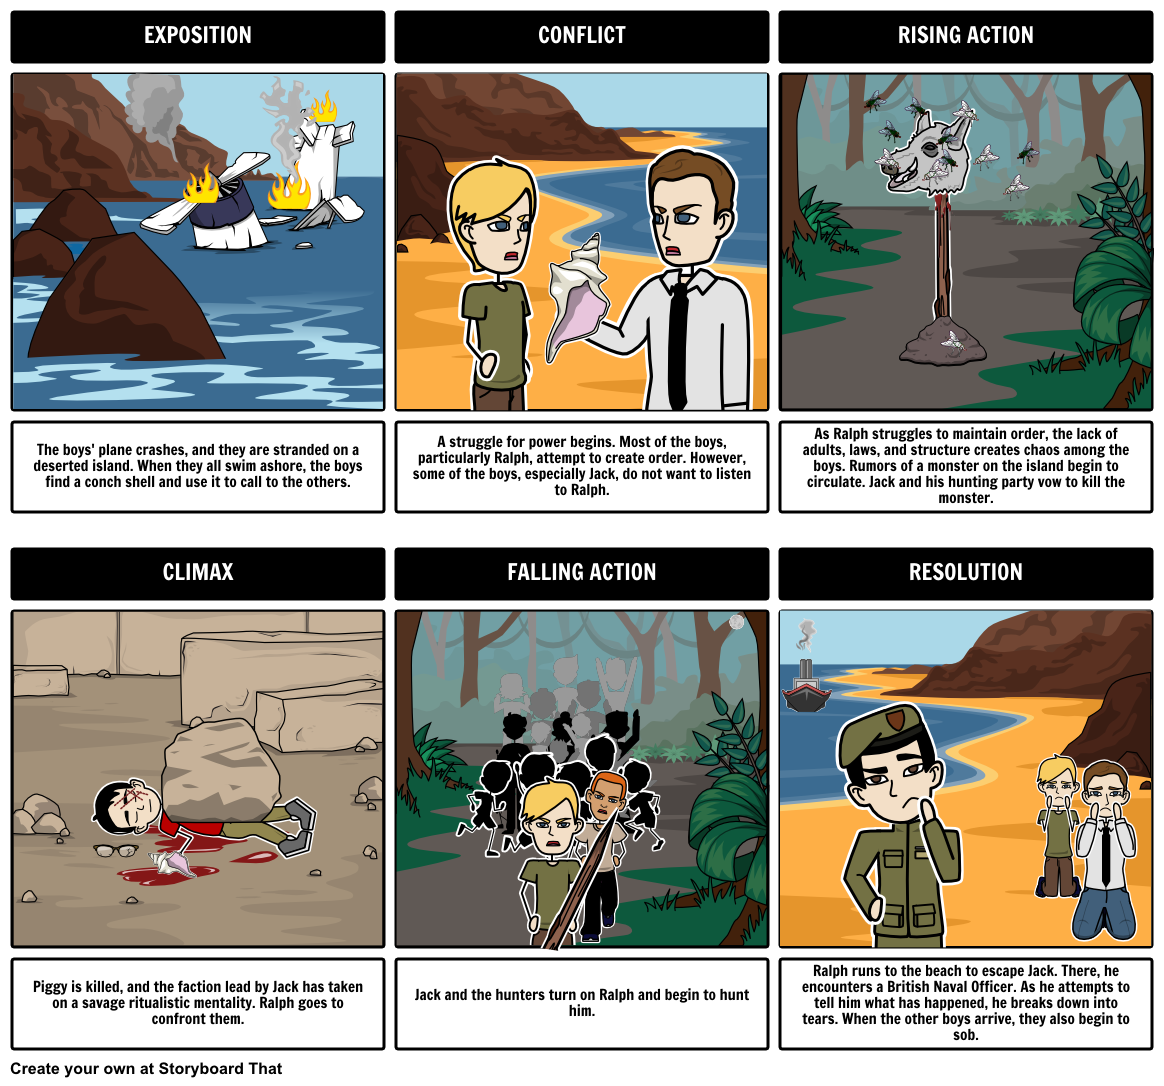 Lord of the flies plot diagram storyboard by rebeccaray lord of the flies plot diagram storyboard by rebeccaray ccuart Images